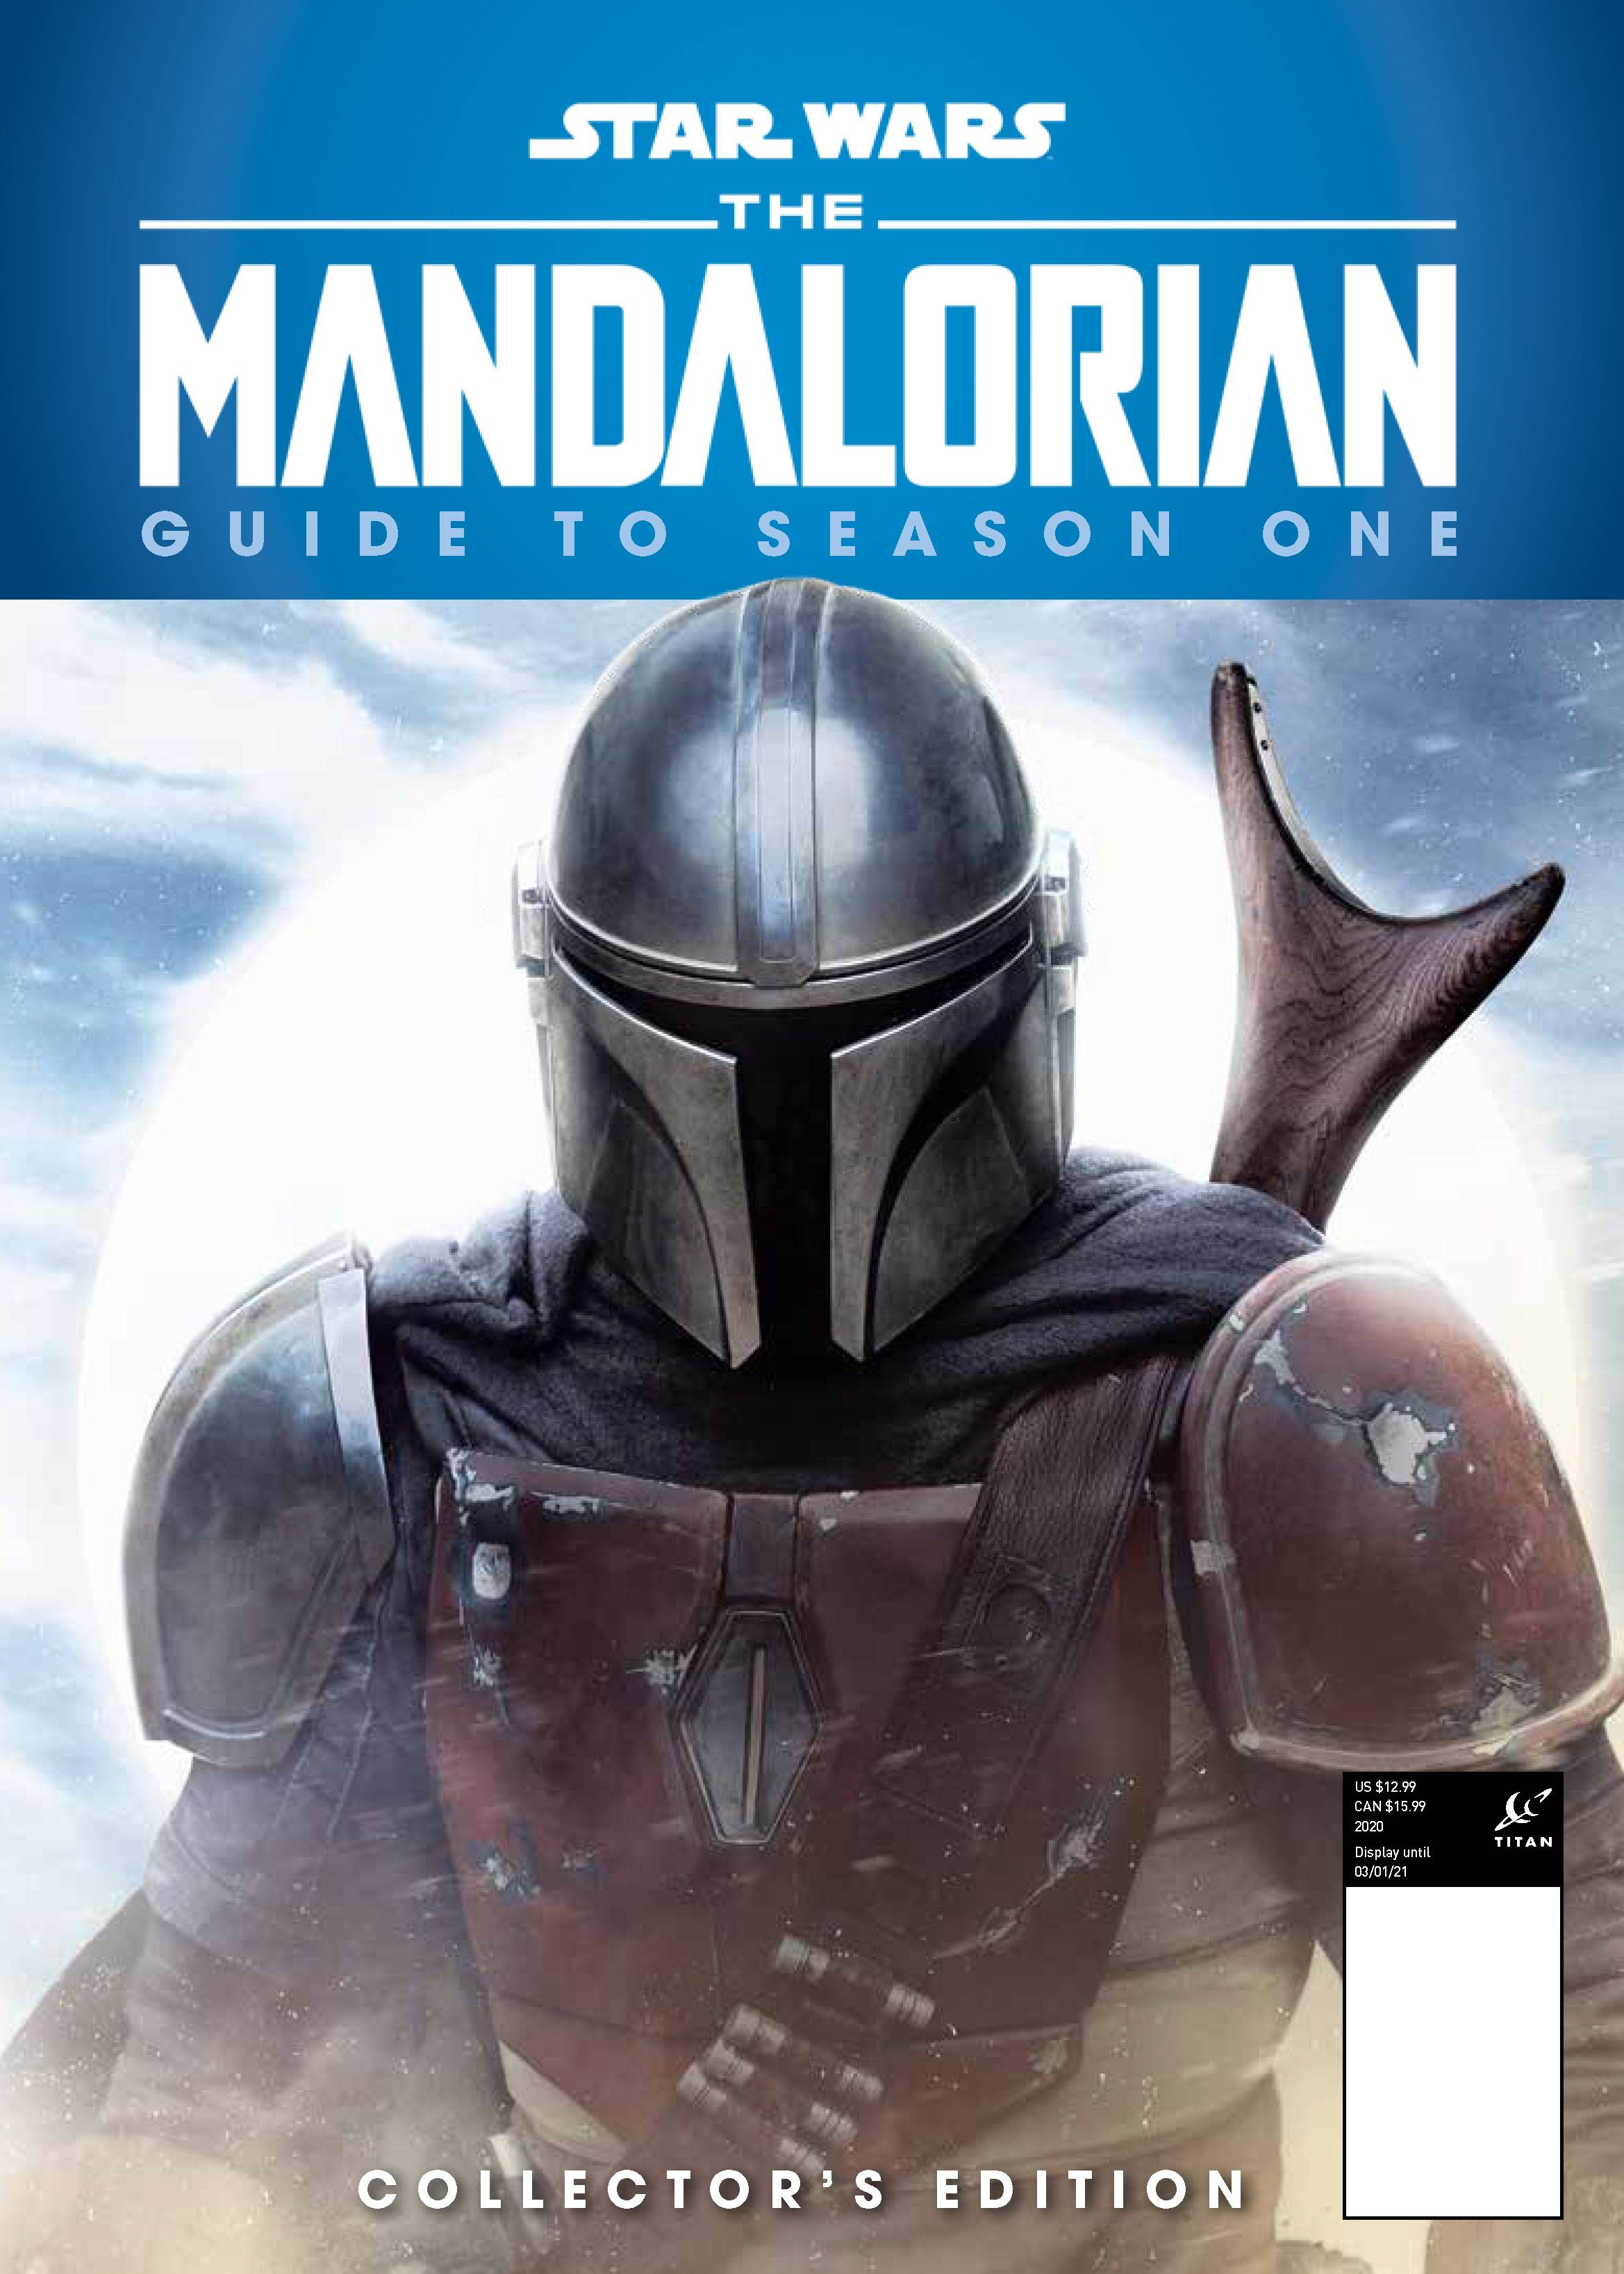 STAR WARS MANDALORIAN GUIDE TO SEASON 1 PX